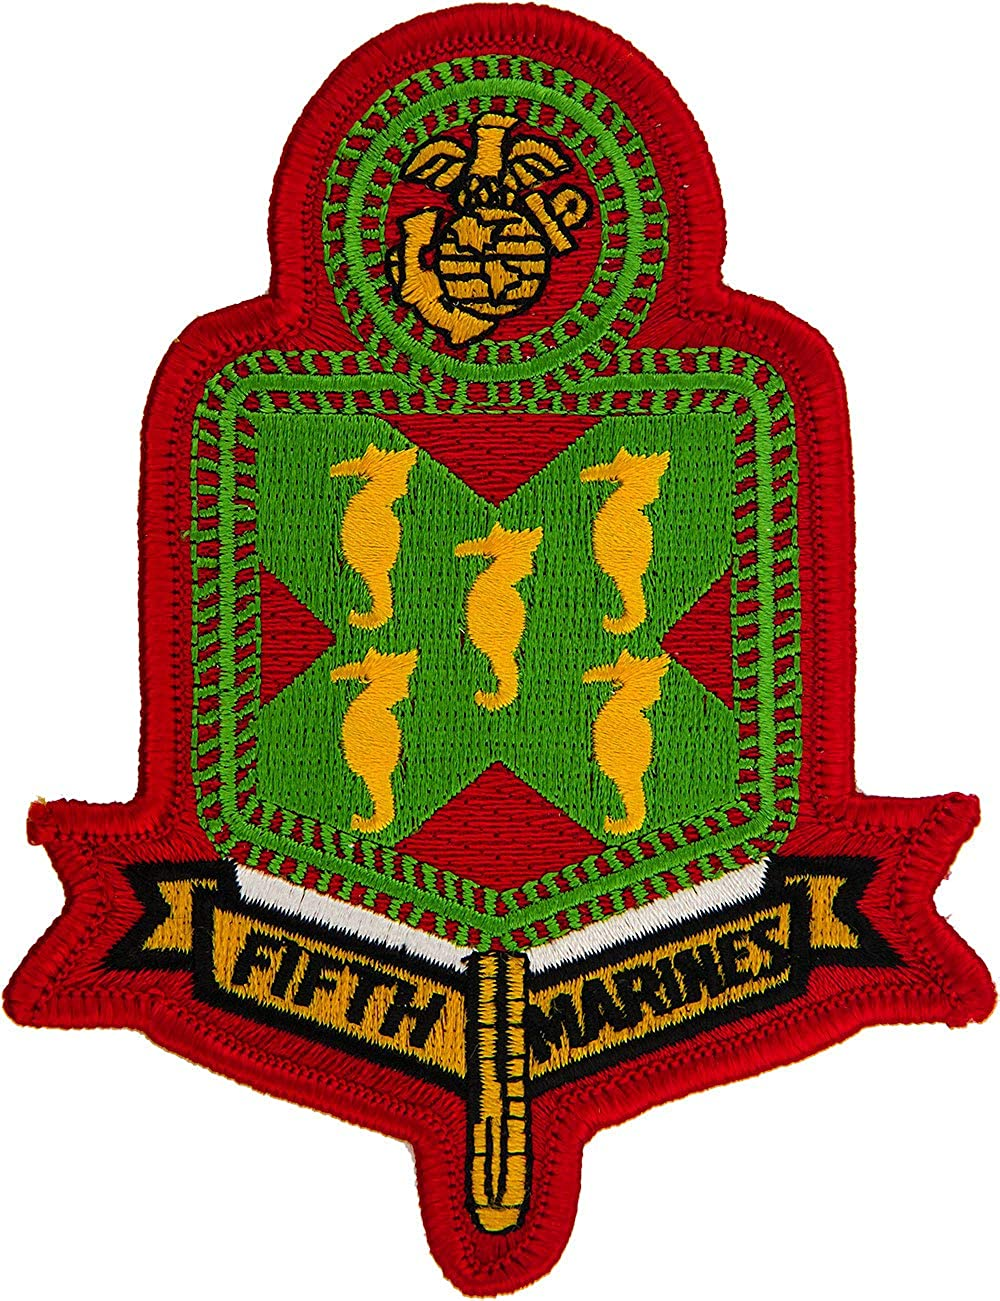 5th Marines Regiment Patch Full Color